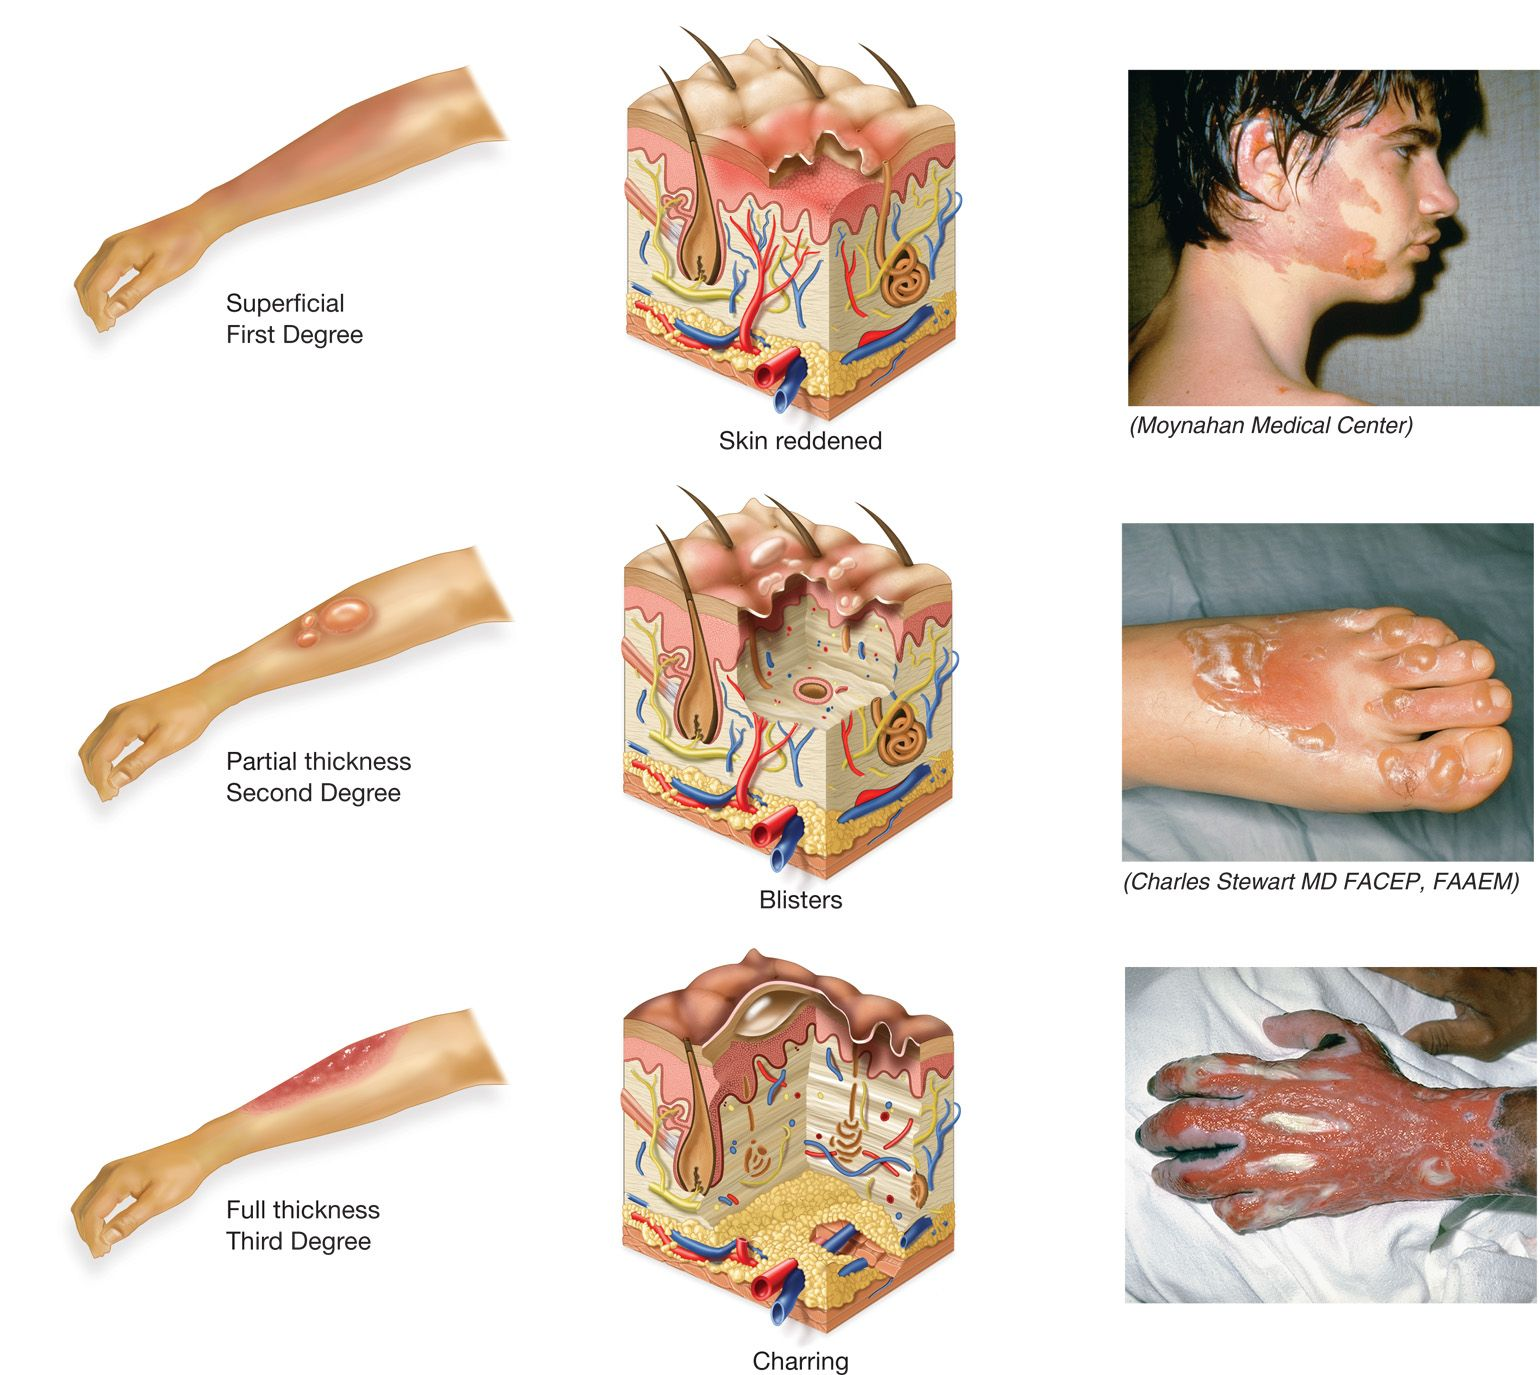 Burns Are Classified According To The Depth Of Tissue Damage Into Degrees First Degree Burns Damage The Epidermis And Damaged Skin Integumentary System Burns